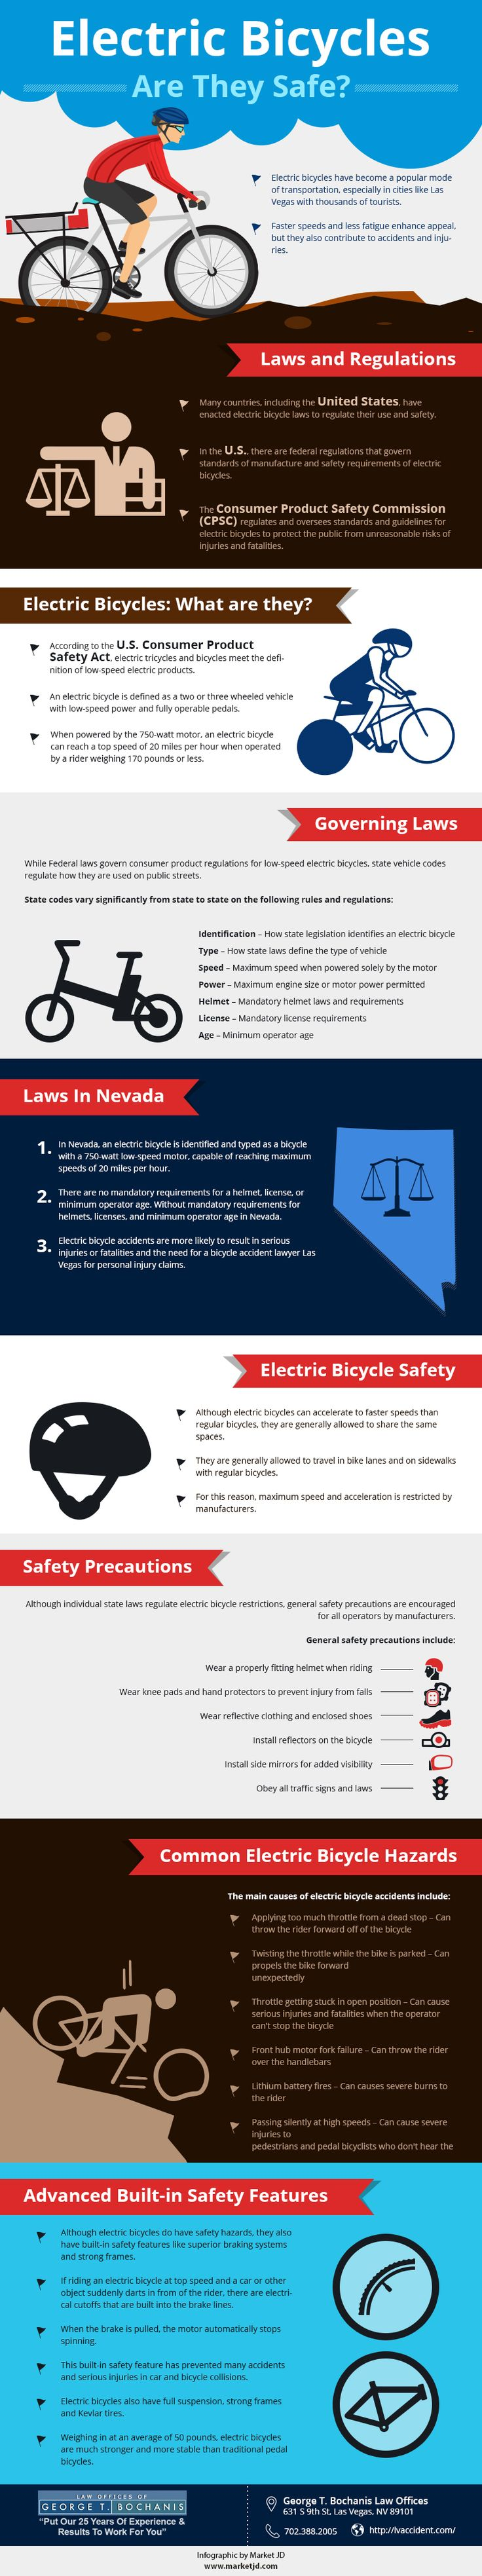 Electric bicycles have become a popular mode of transportation, especially in cities like Las Vegas with thousands of tourists. Faster speeds and less fatigue enhance appeal, but they also contribute to accidents and injuries. For bicycle accidents in Las Vegas, a bicycle accident lawyer Las Vegas may be necessary for personal injury claims. For more details visit: http://lvaccident.com/